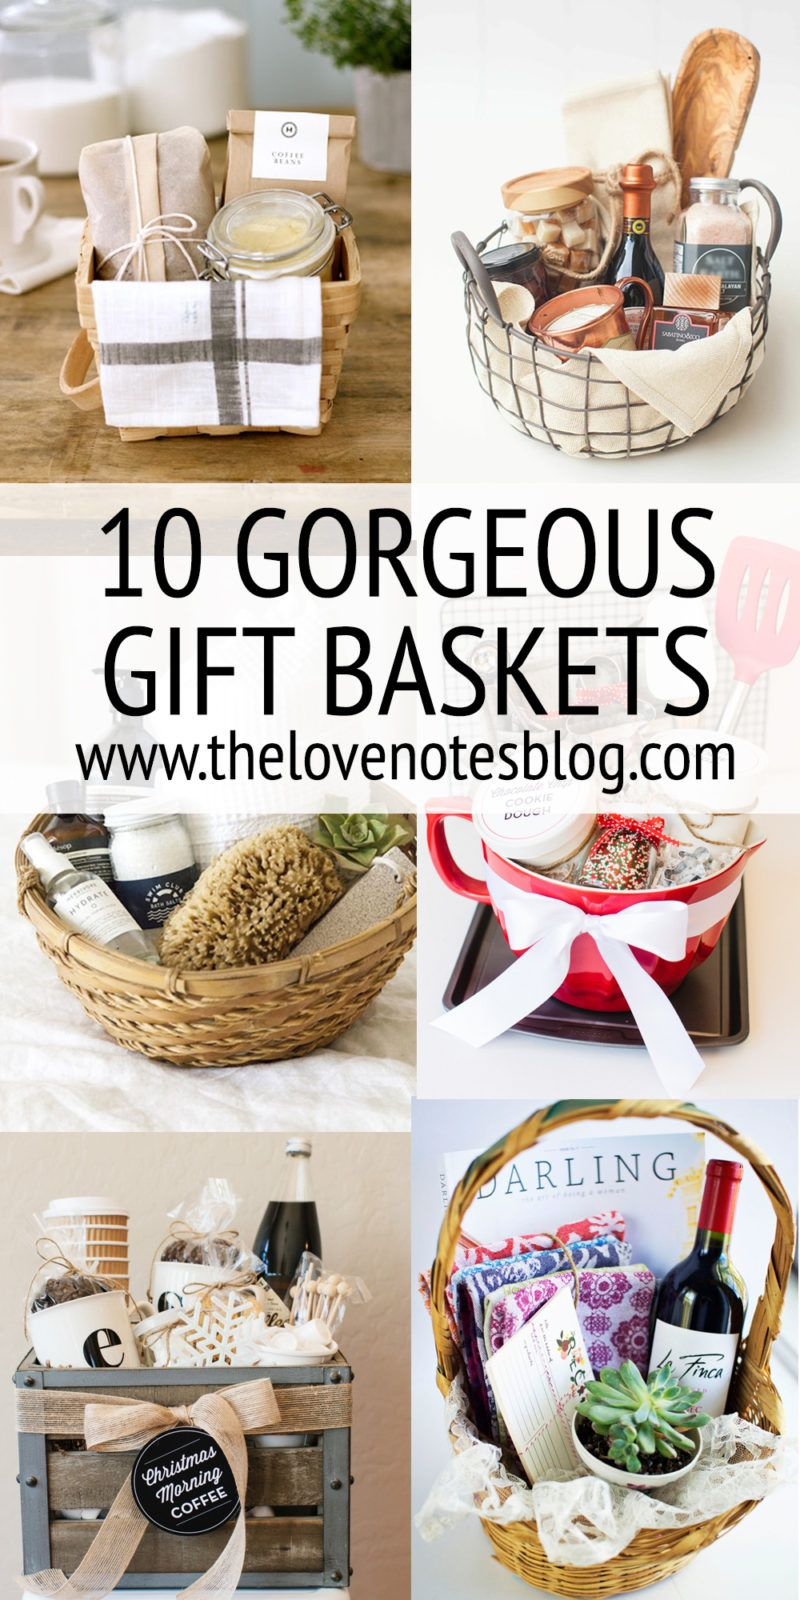 Gift basket ideas basket ideas what s and originals i gathered up some of my favorite gift basket ideas listed them here for you if you care to see where they came from whats in each basket negle Image collections